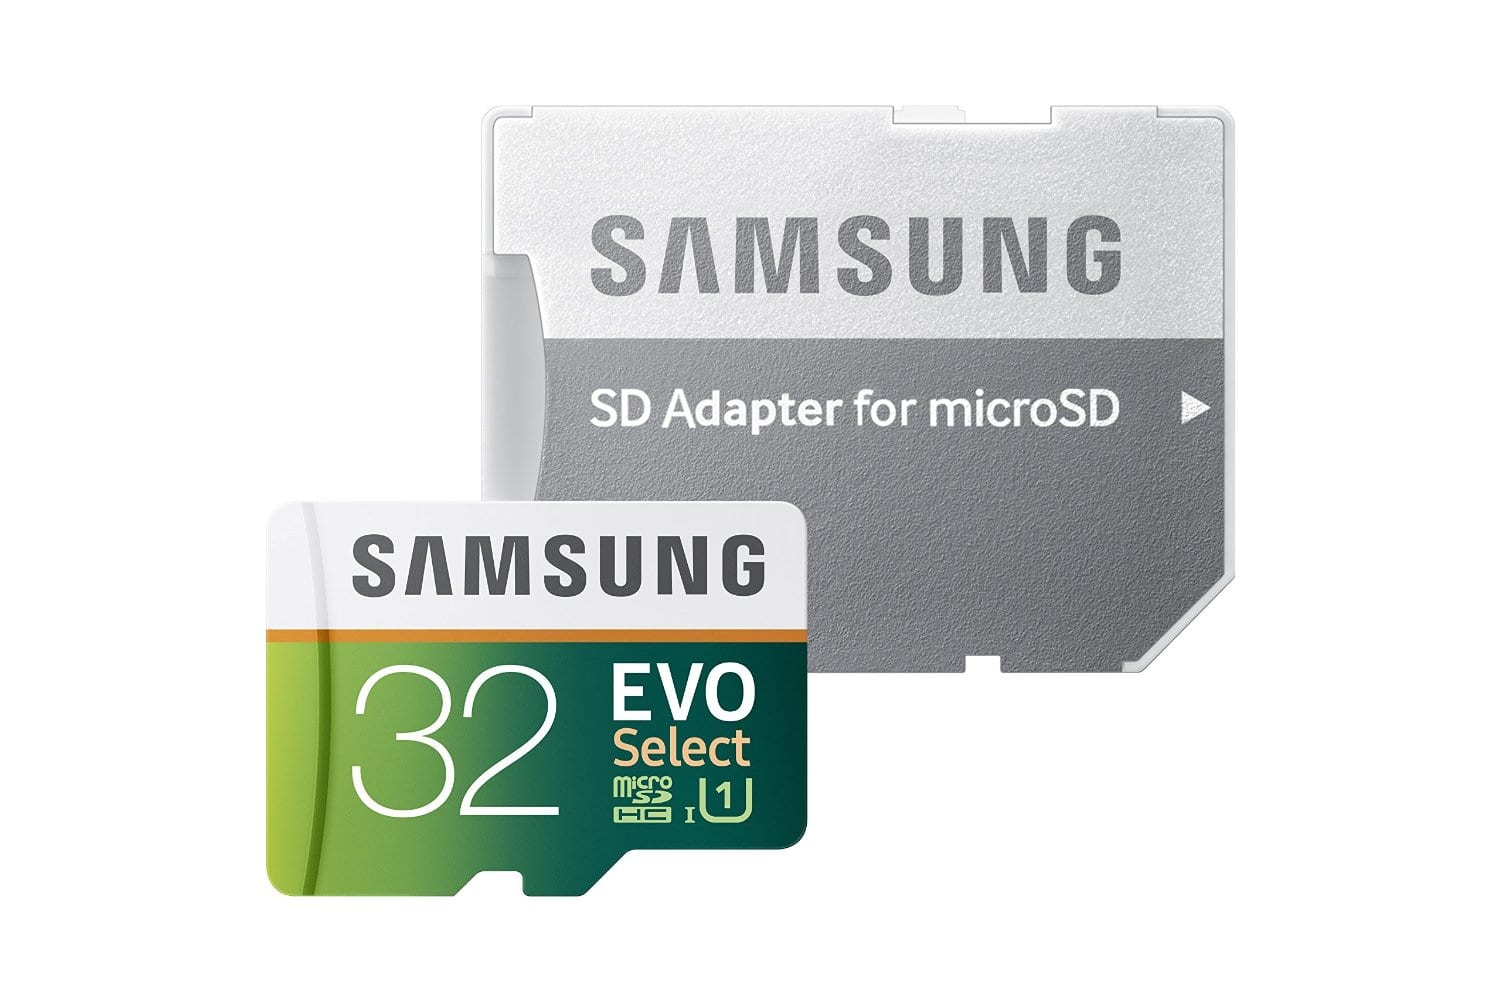 Samsung 32gb evo select micro SD card $9.99 amazon